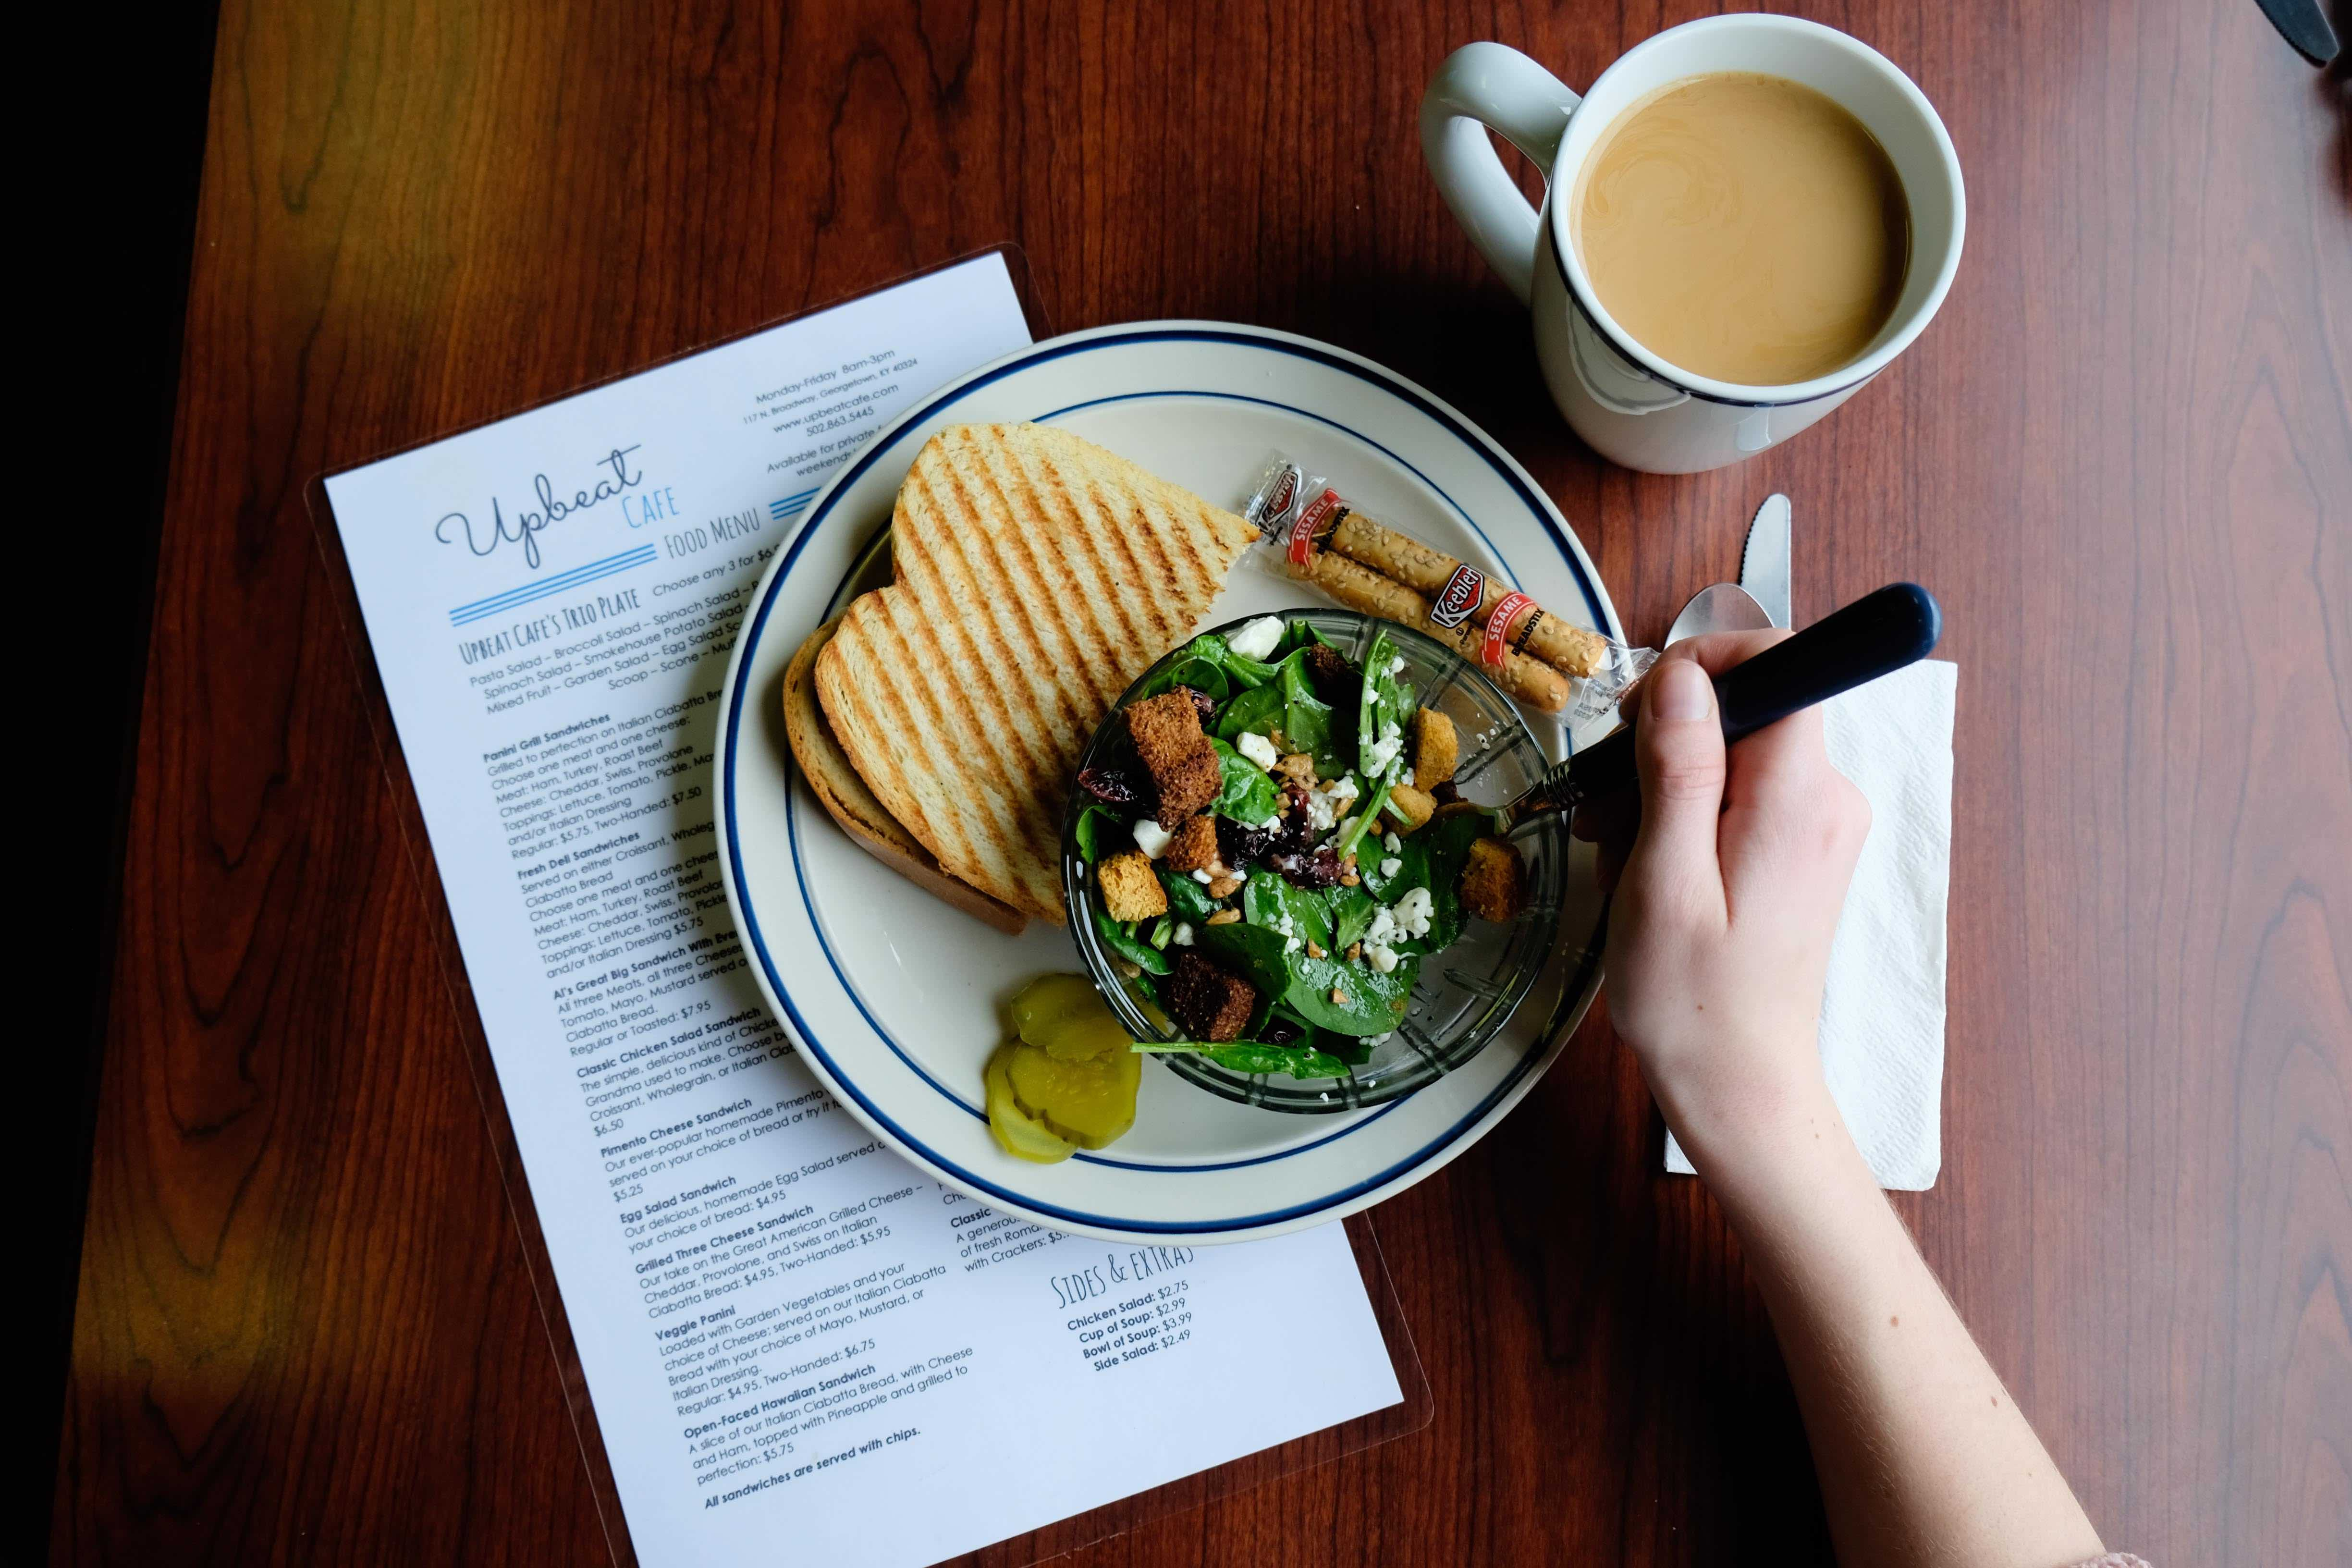 Upbeat Cafe dining guide